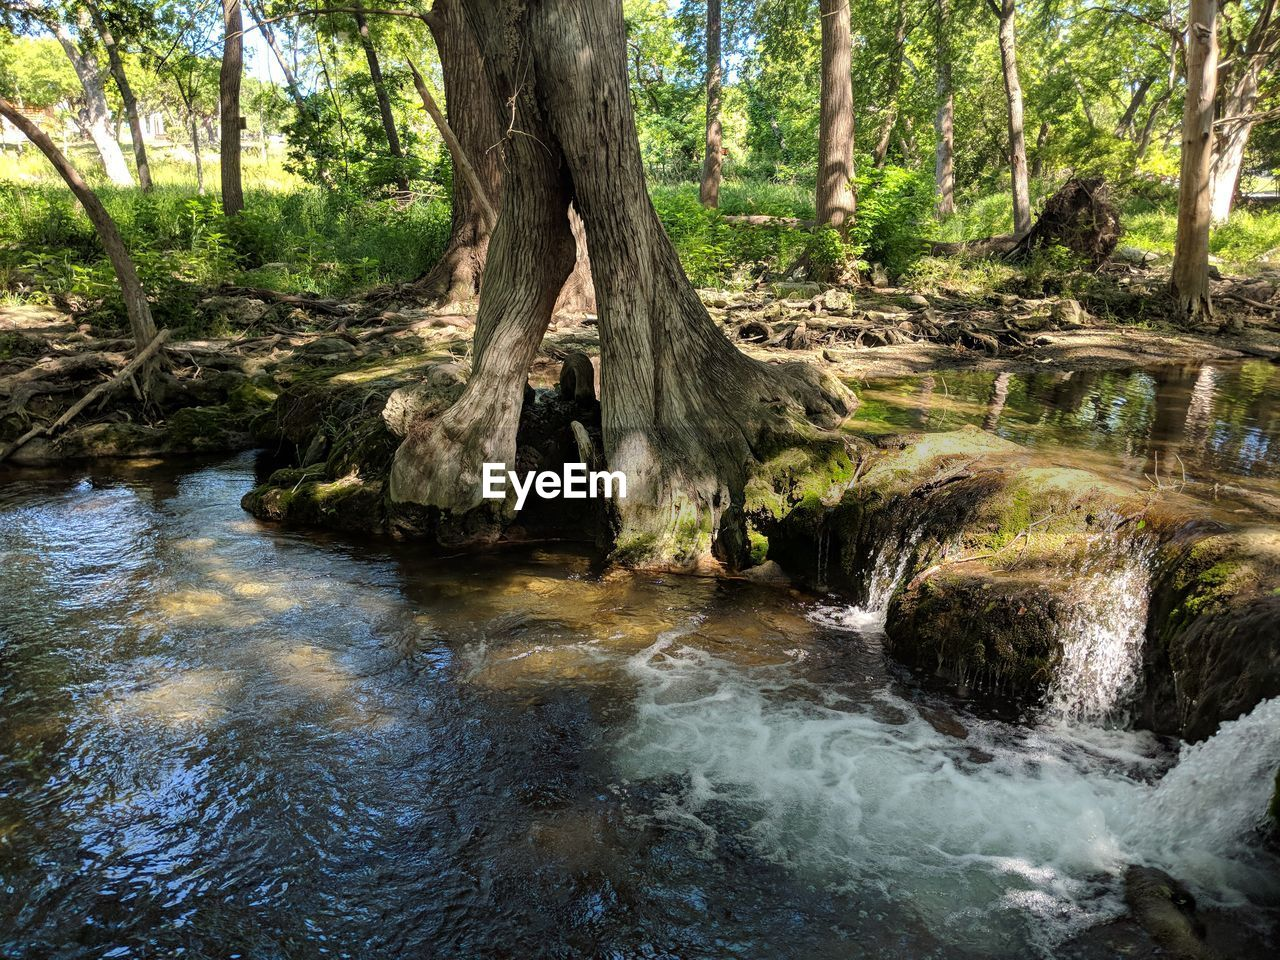 tree, forest, plant, water, land, nature, scenics - nature, beauty in nature, tree trunk, trunk, growth, tranquility, no people, environment, day, flowing, river, non-urban scene, motion, outdoors, woodland, flowing water, stream - flowing water, rainforest